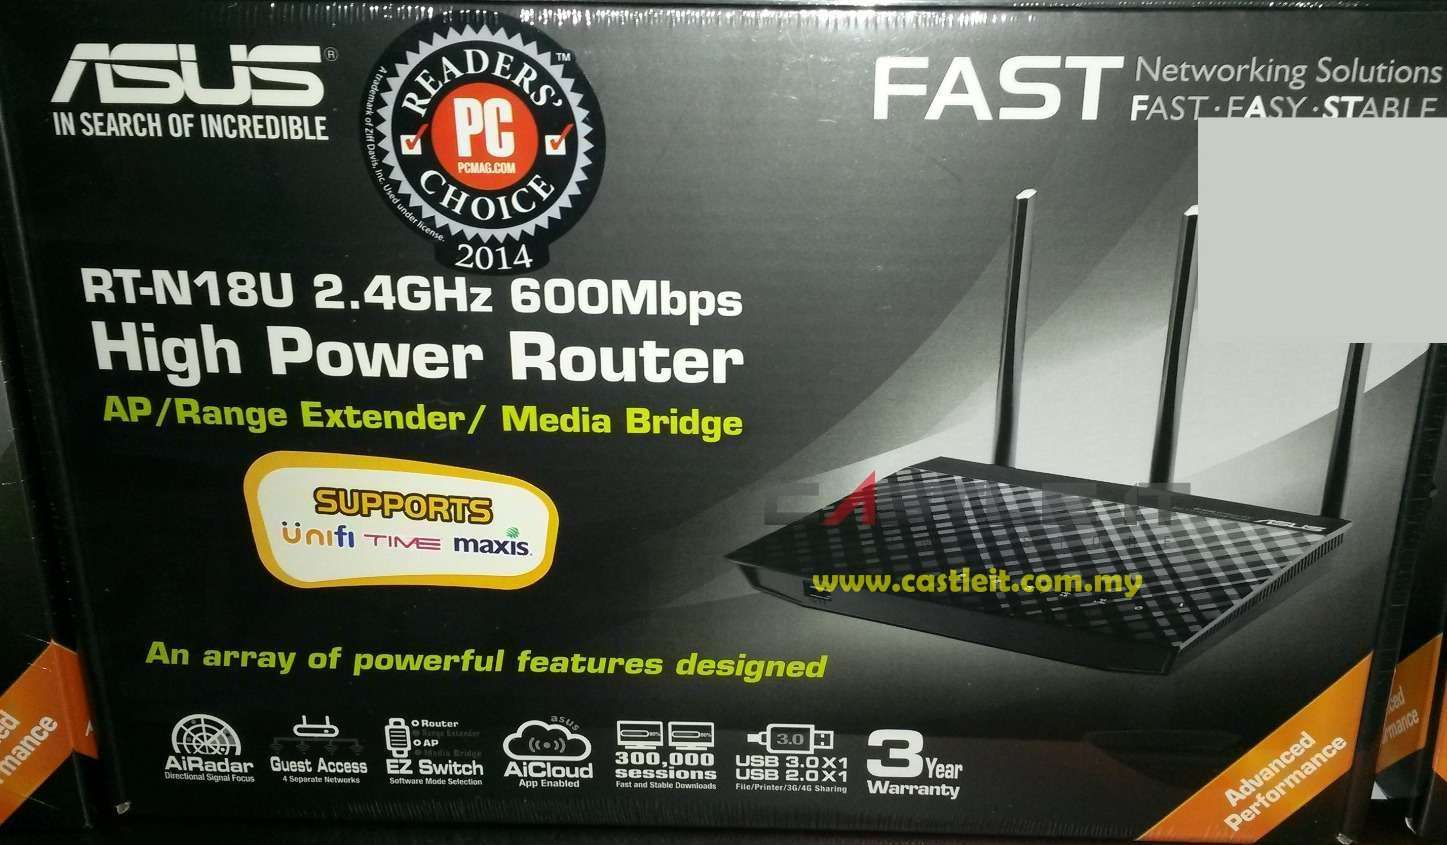 ASUS Router Gigabit WiFi N600MBPS (RT-N18U)